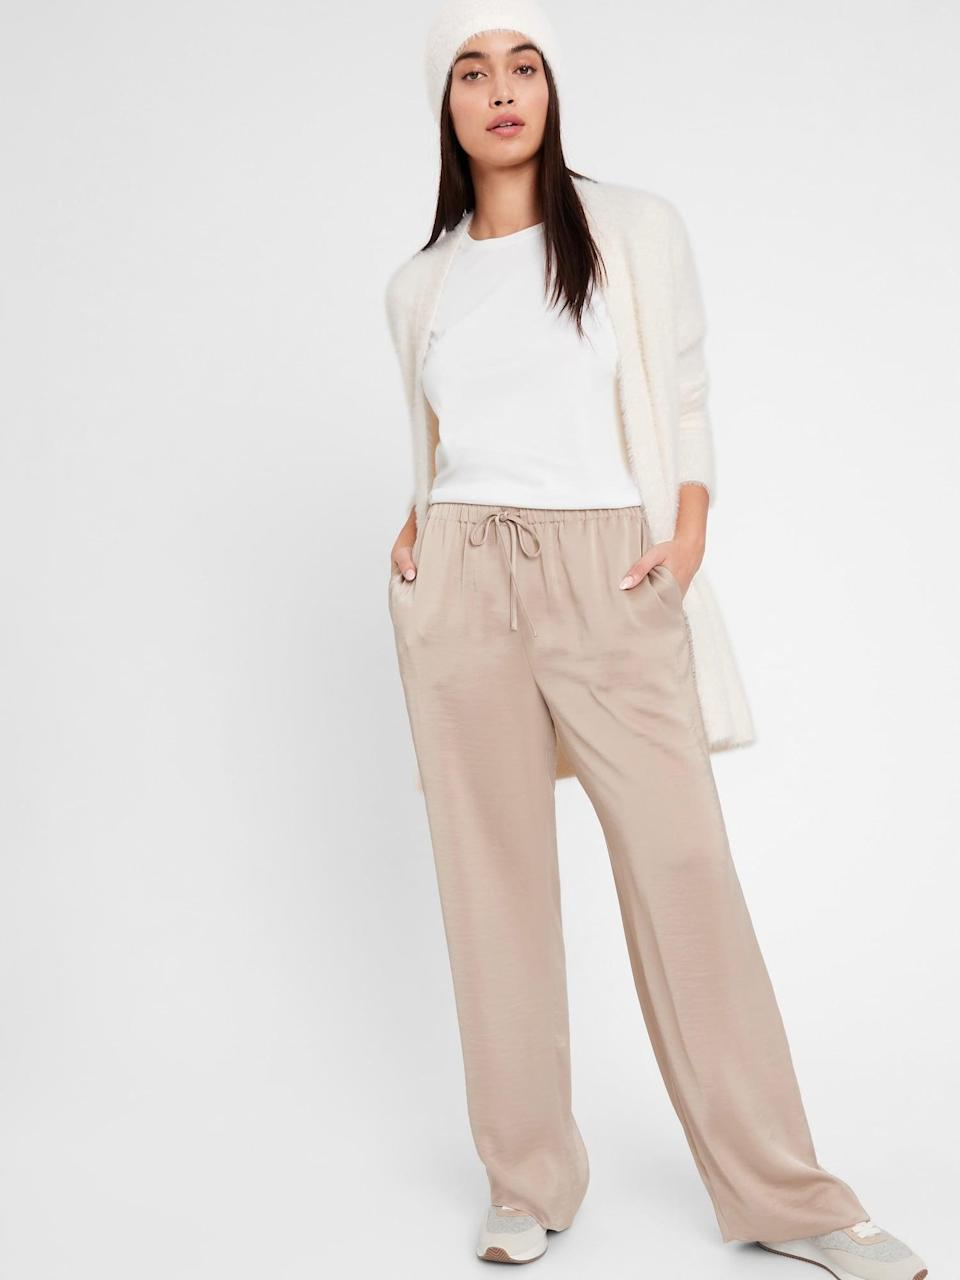 <p>Still can't get enough of loungewear? These <span>Banana Republic Wide-Leg Satin Pull-On Pant</span> ($71, originally $90) are a perfect compromise that are cozy like a favorite pair of satin pajamas, but dressy enough pair with heels.</p>